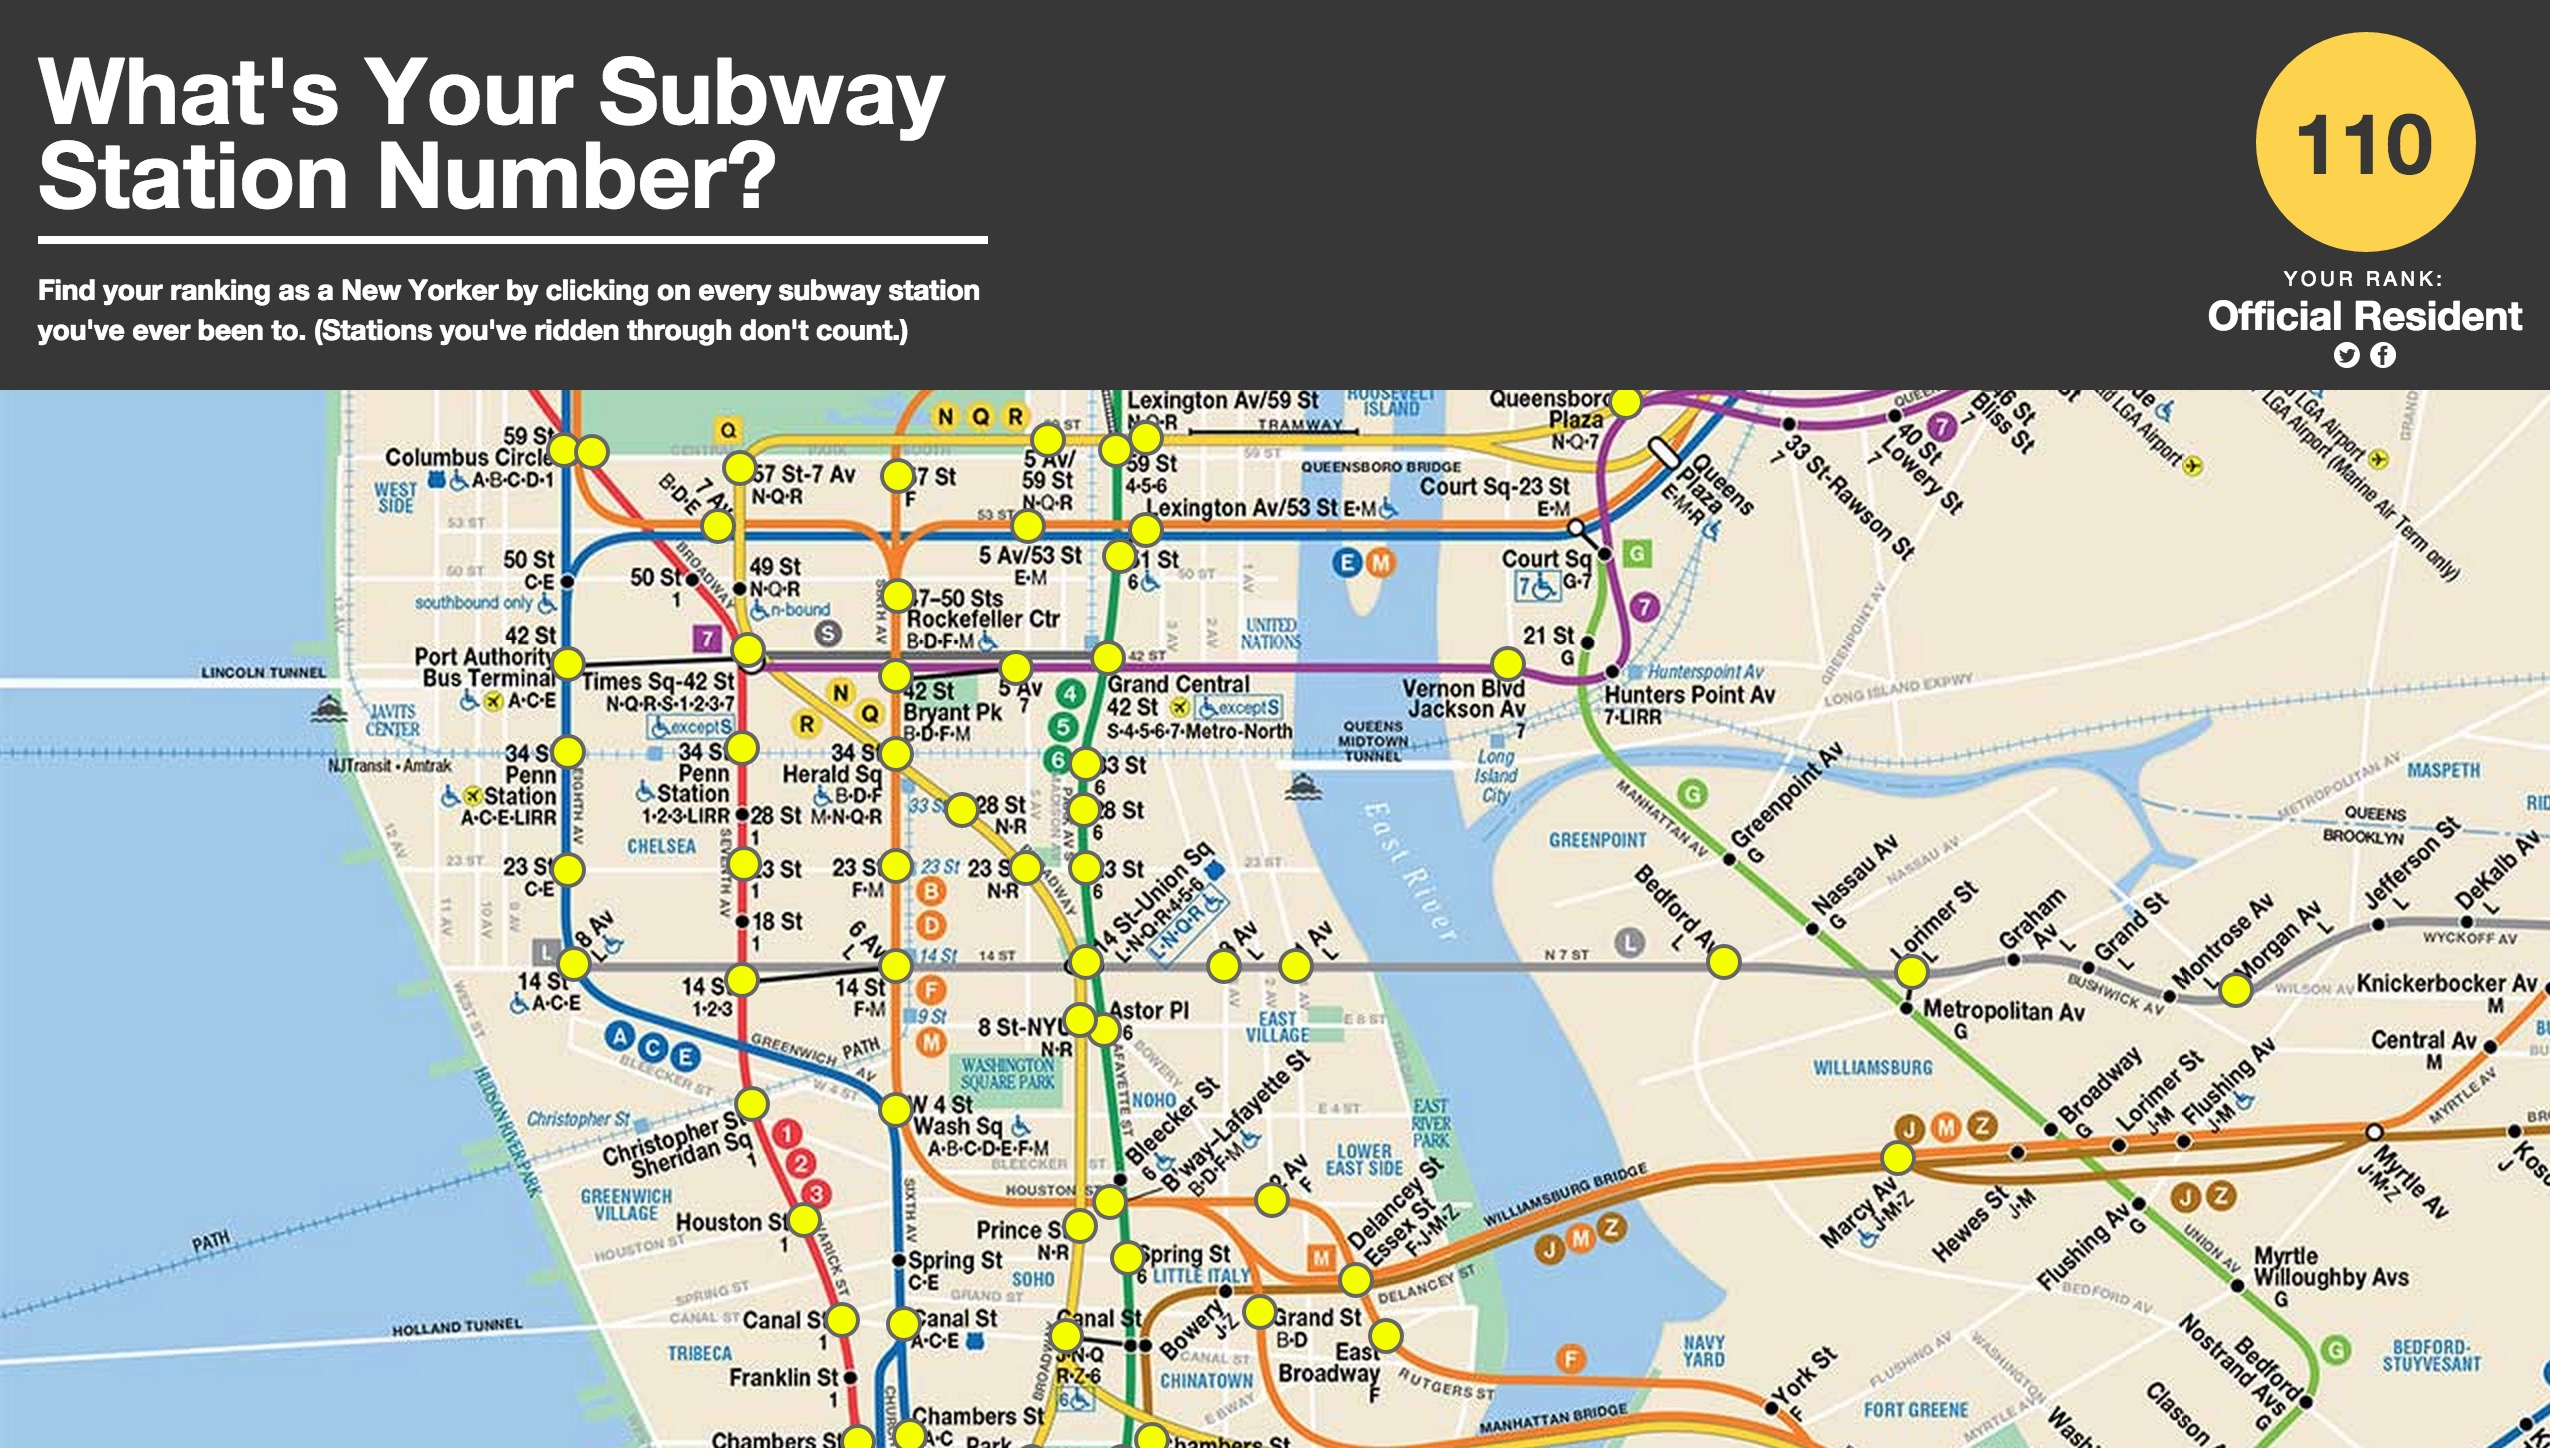 Ny Subway Map 4 5 6 Line.What S Your Subway Station Number A Website To Quiz How New York